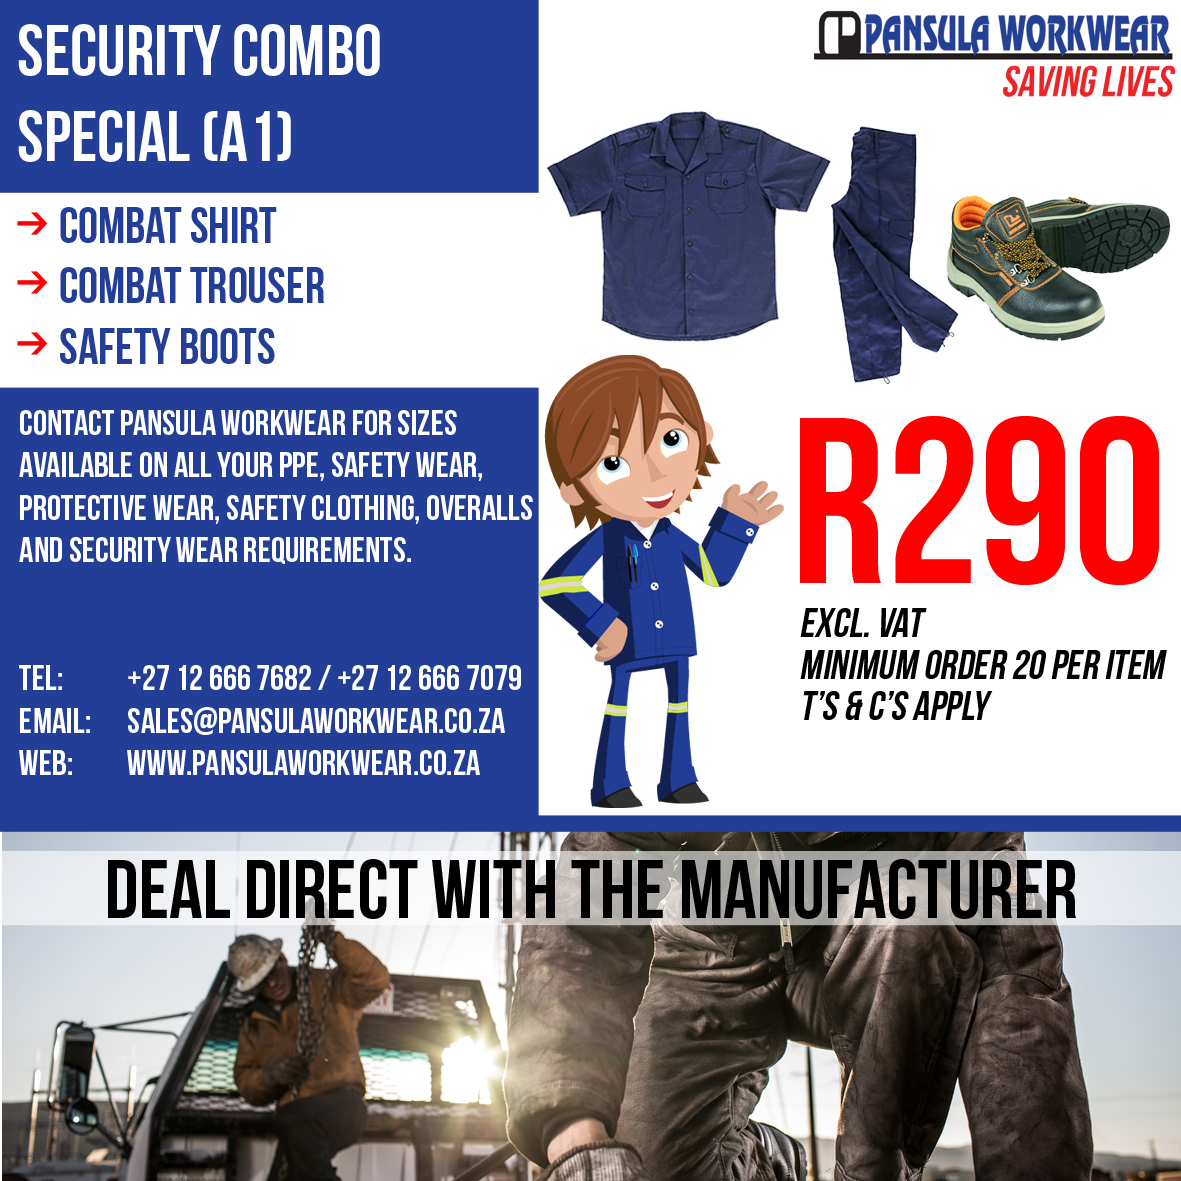 Workwear Supplier in Pretoria - Deal direct with the Manufacturer